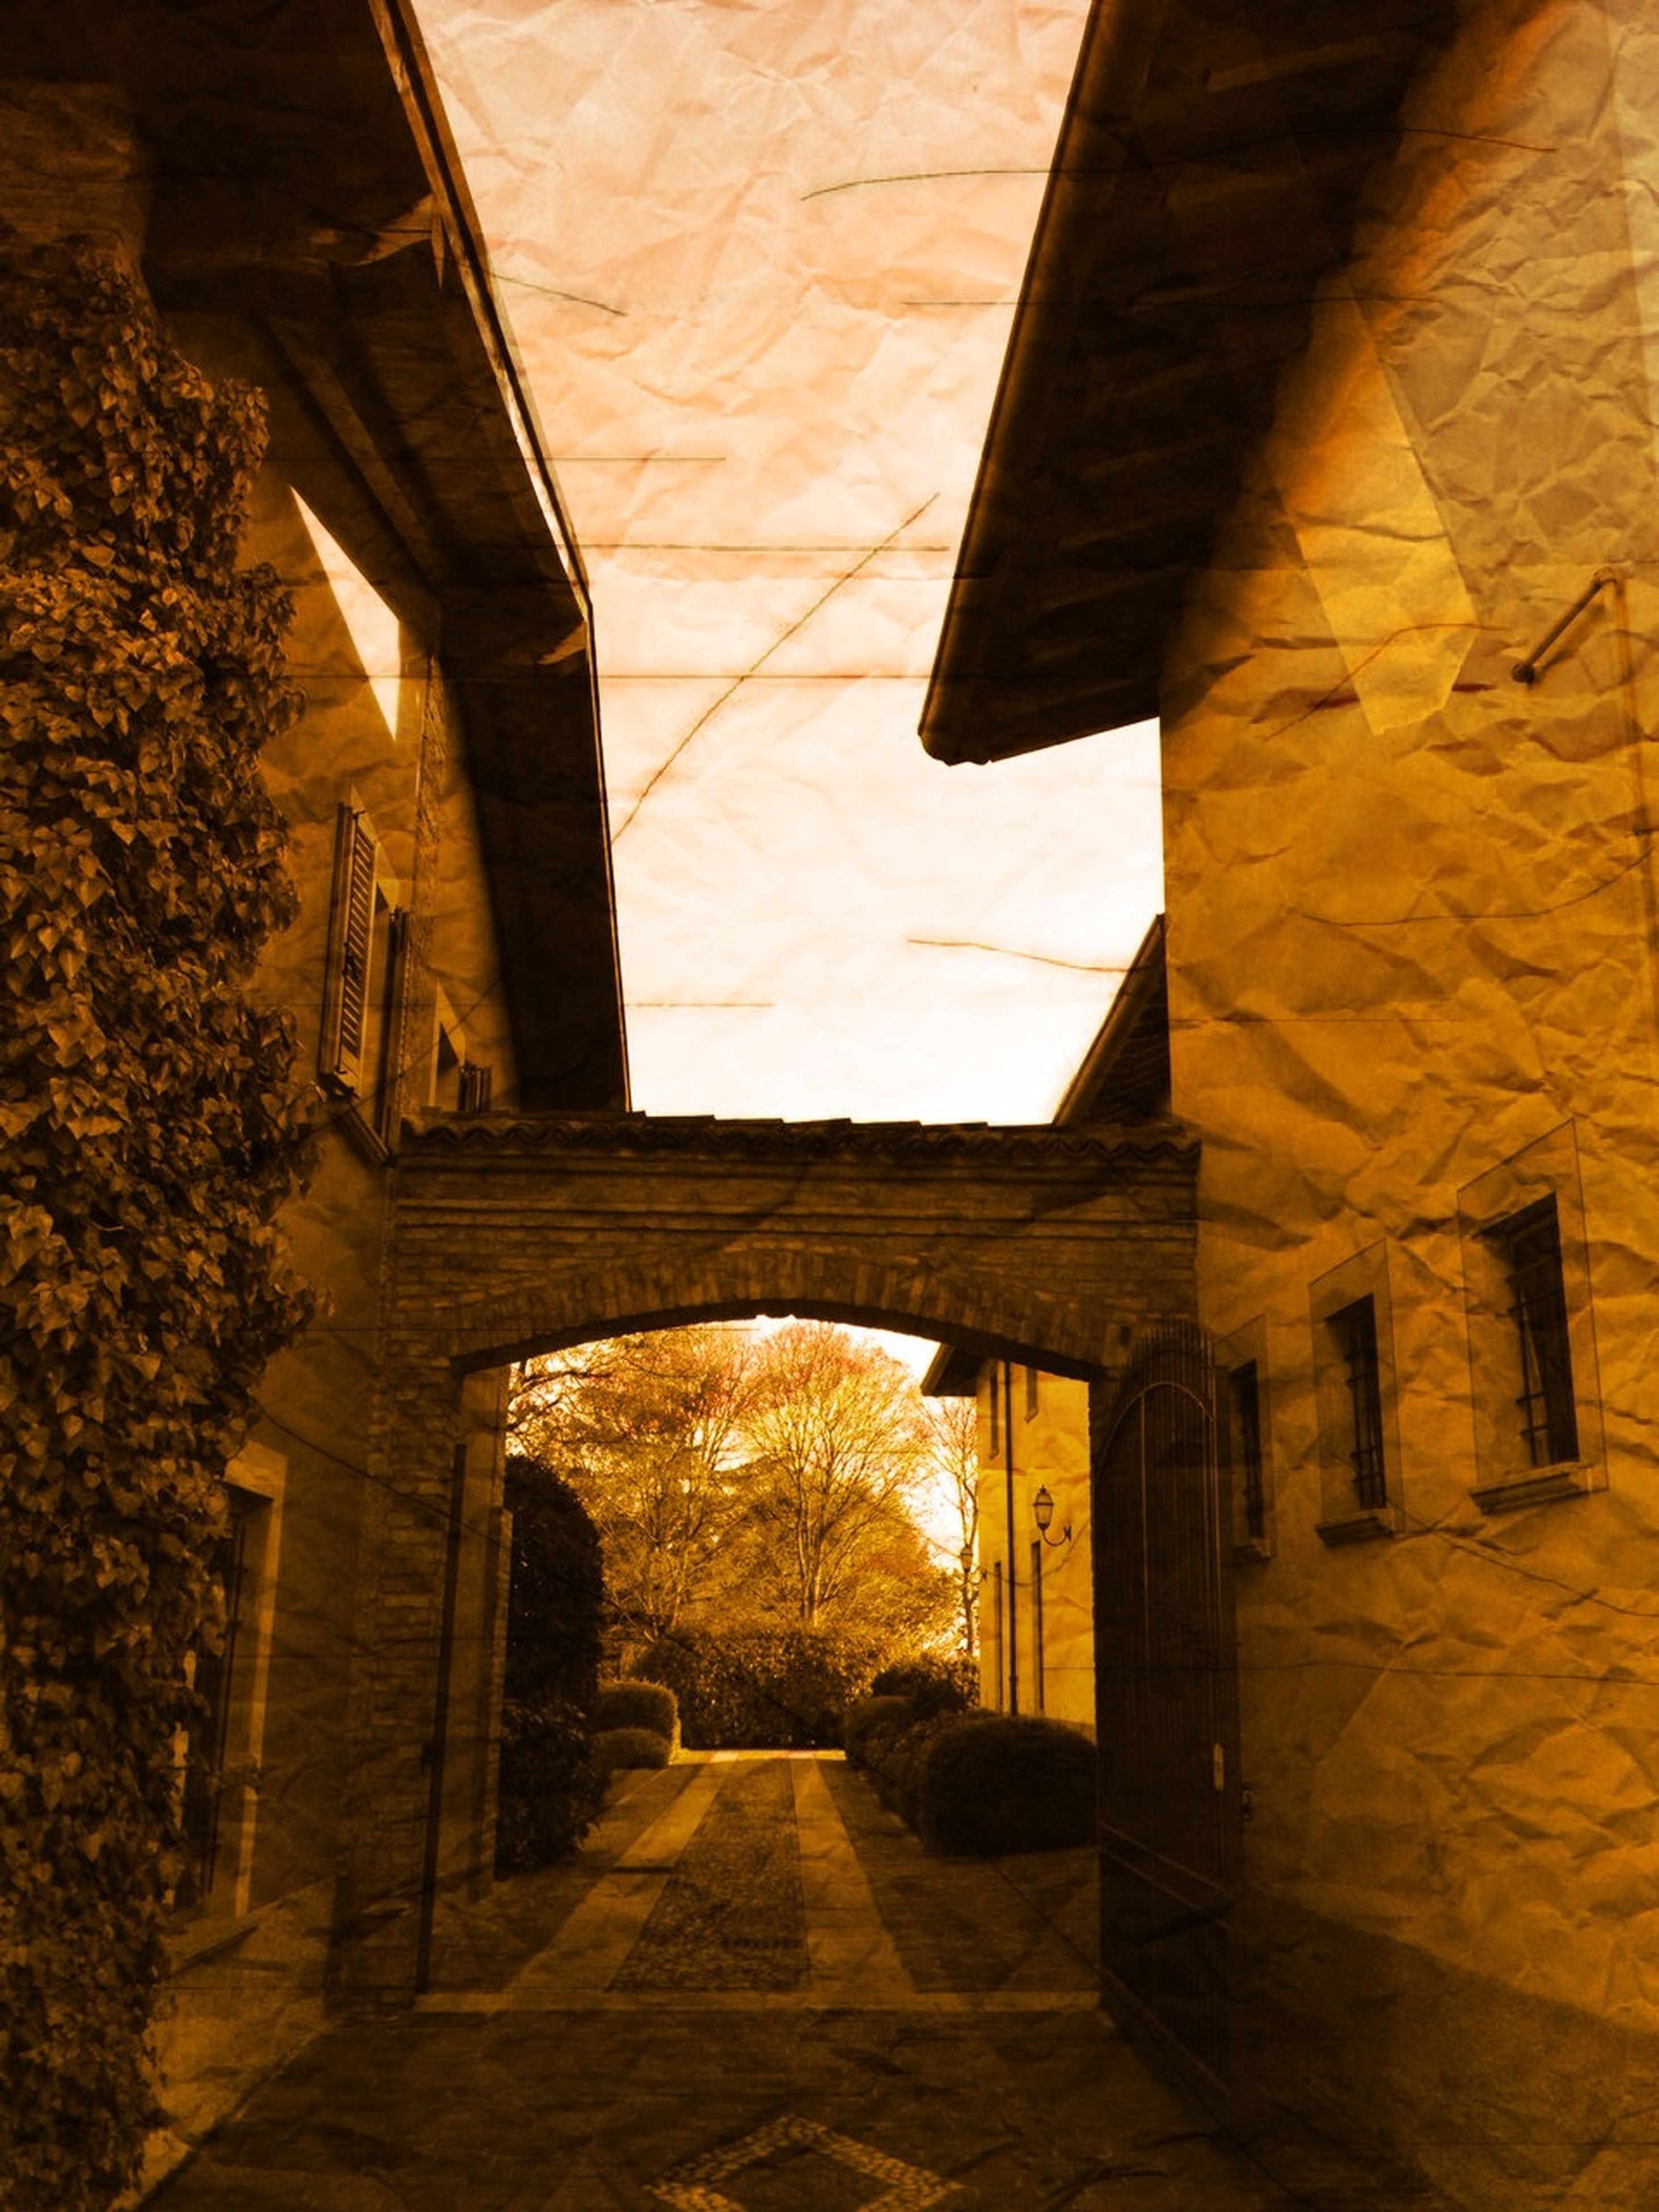 architecture, built structure, the way forward, building exterior, diminishing perspective, sunlight, building, shadow, no people, narrow, wall - building feature, empty, indoors, walkway, low angle view, day, house, long, vanishing point